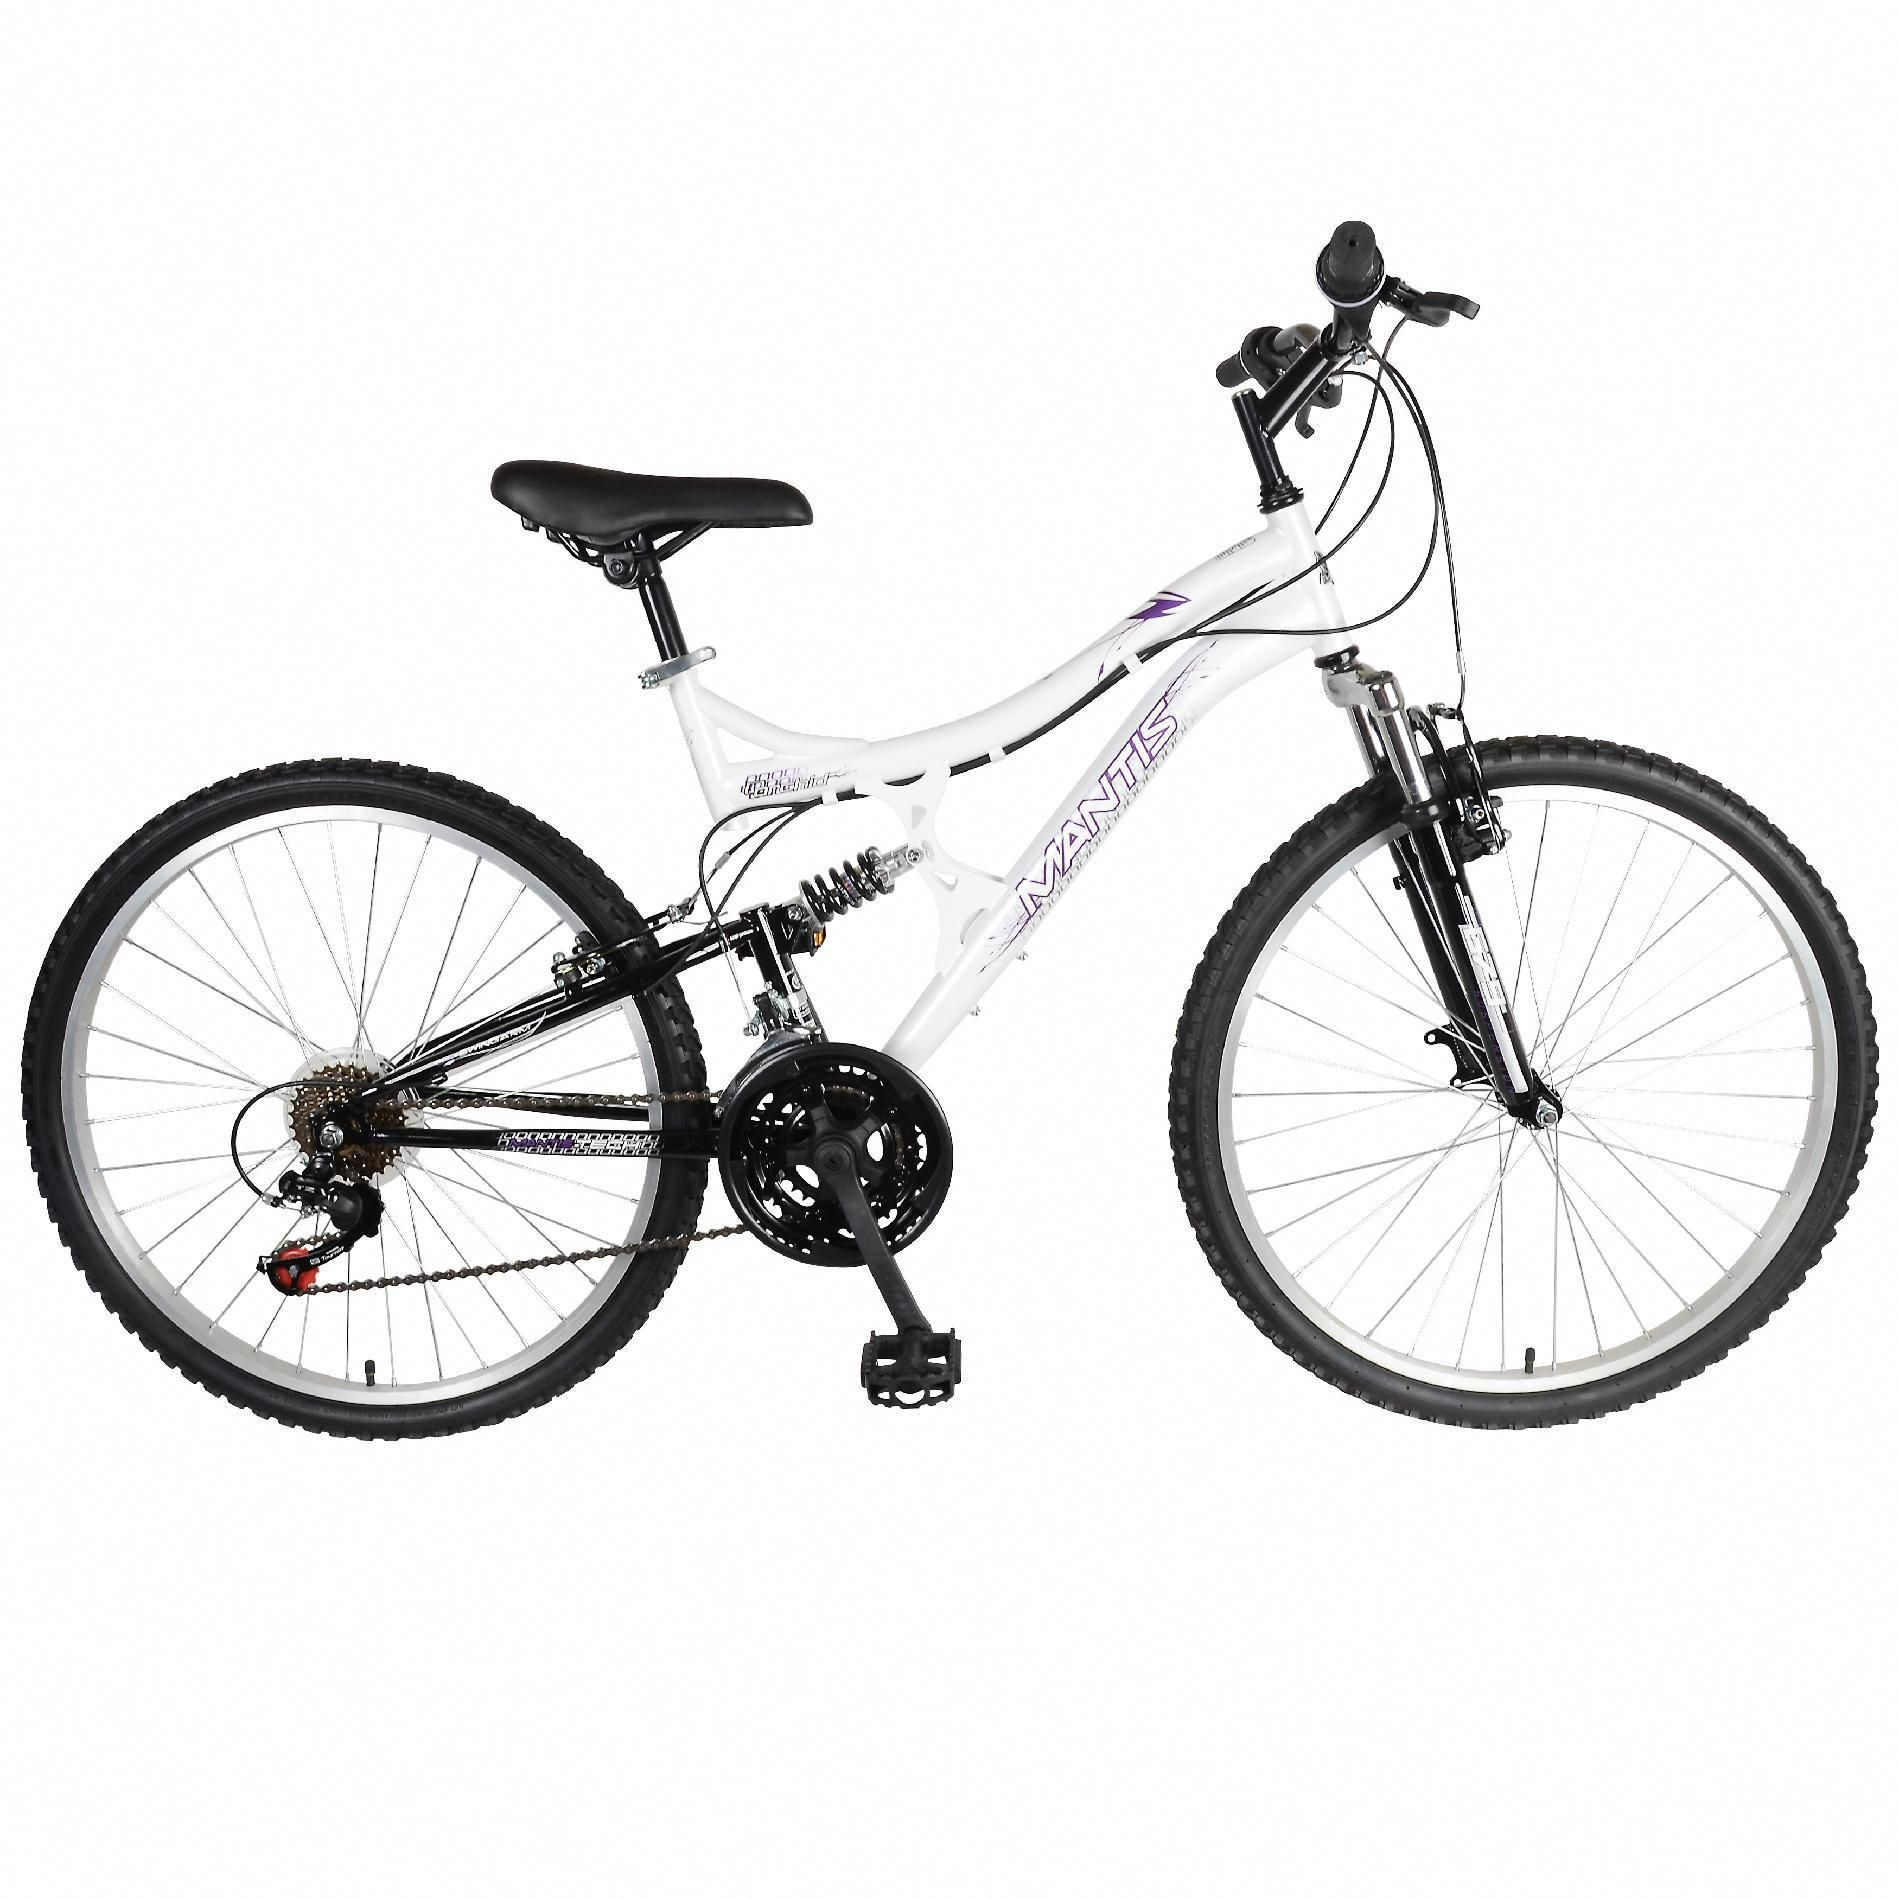 818b6318e68 Mantis Orchid 26 Full Suspension Bicycle, White #bestbikeproducts ...